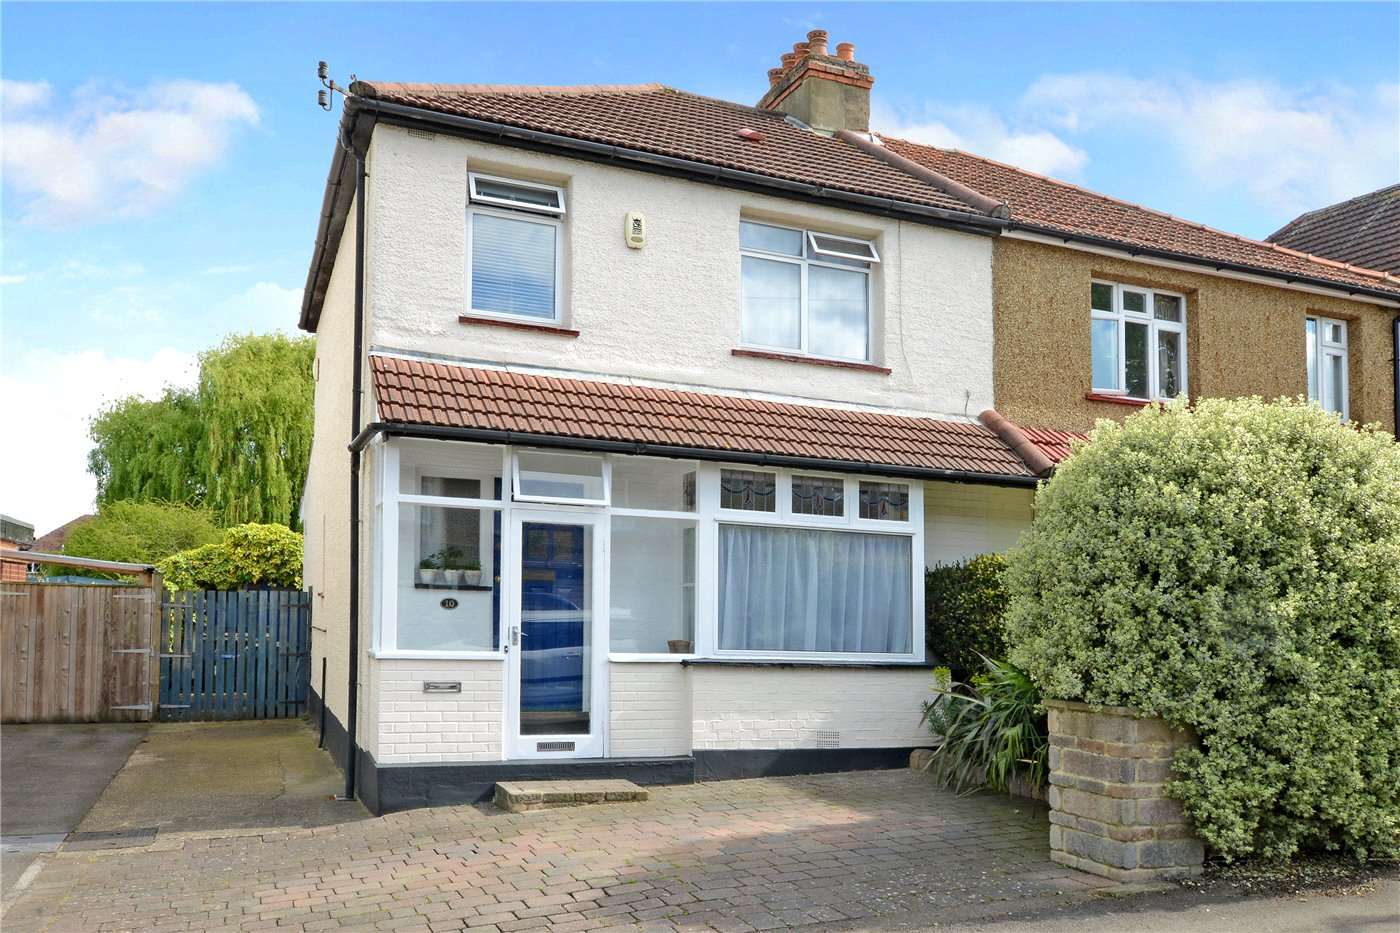 3 Bedrooms Semi Detached House for sale in Lavender Avenue, Worcester Park, KT4